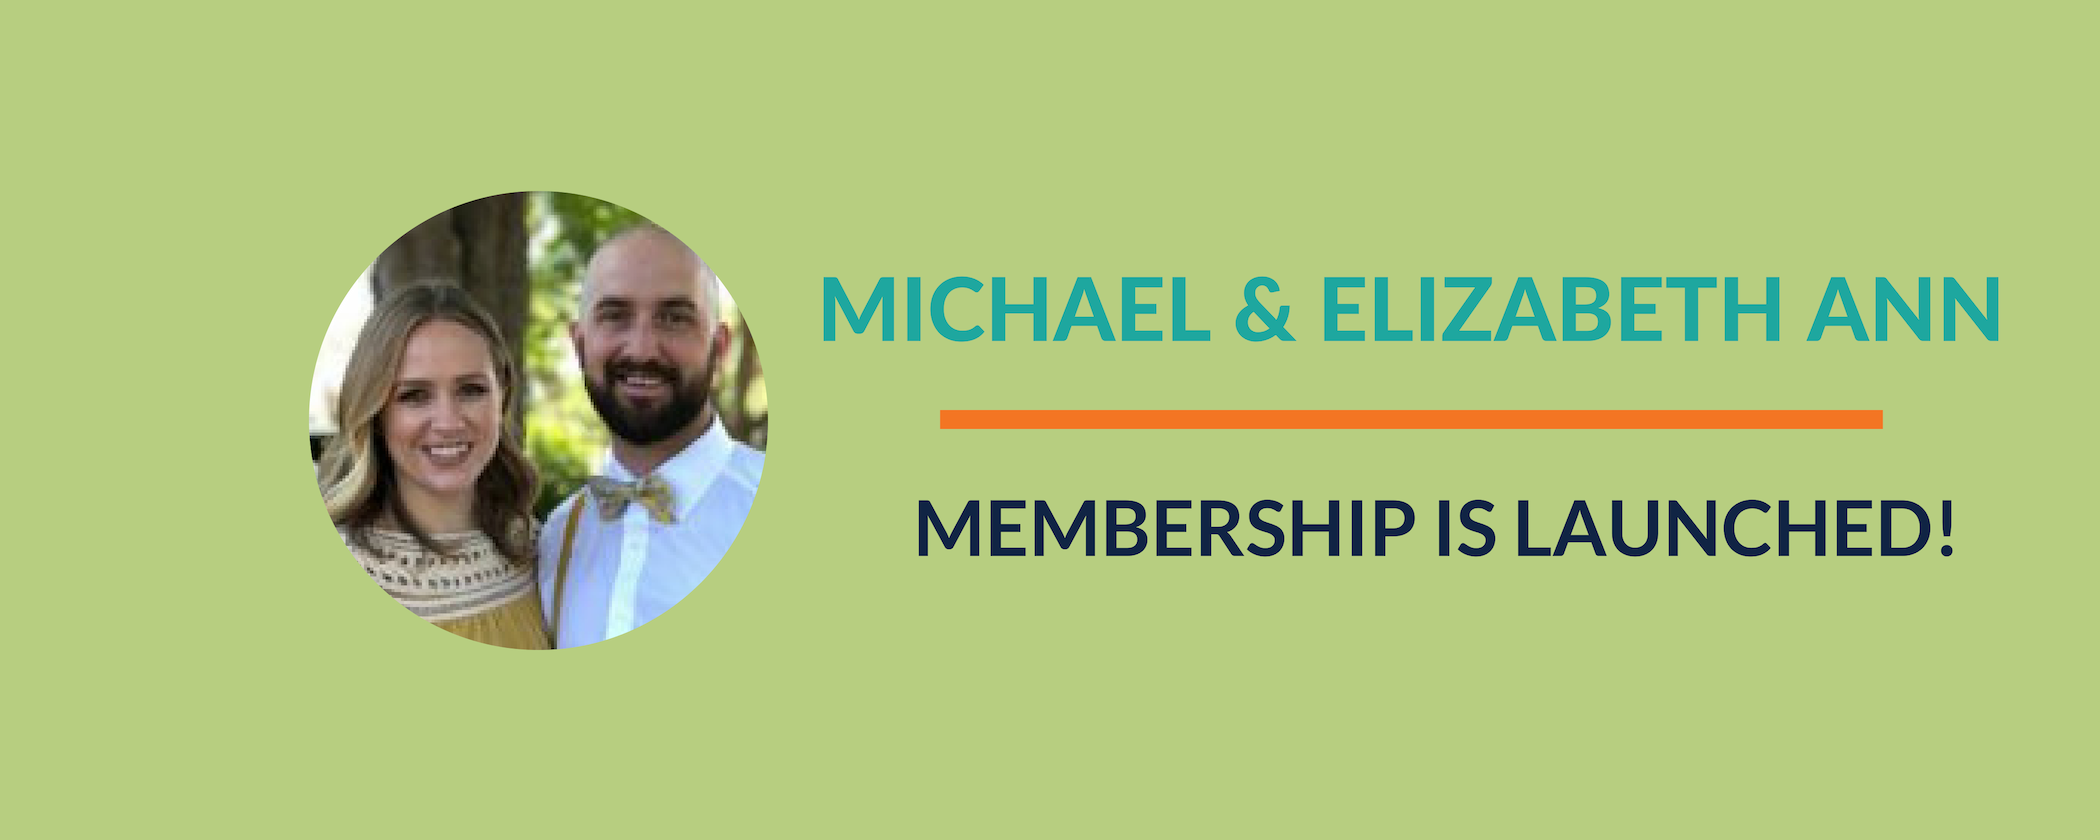 Success Story:  Michael & Elizabeth Ann just launched their membership!